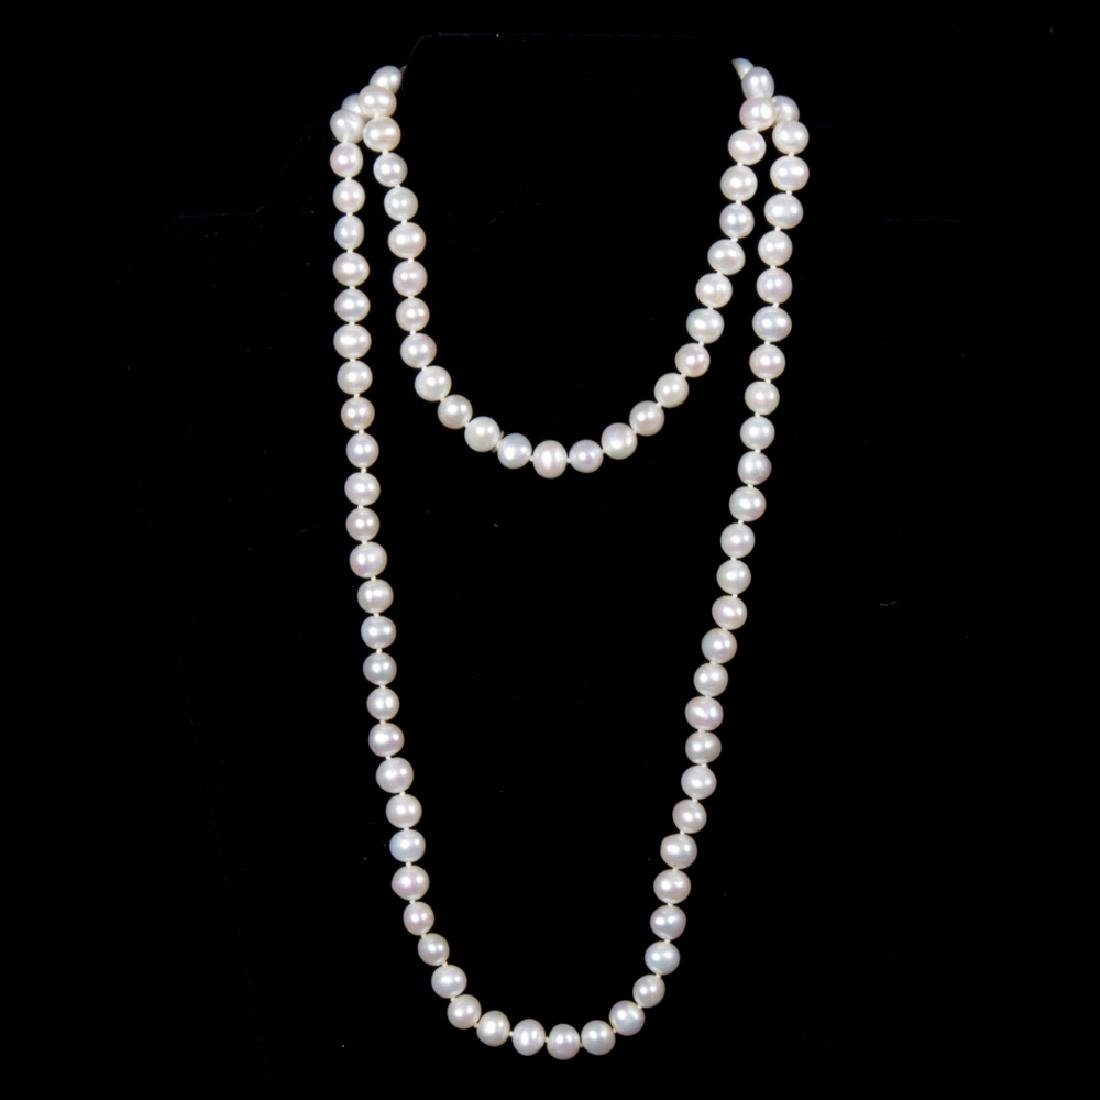 A White Cultured Pearl Single Strand Necklace,